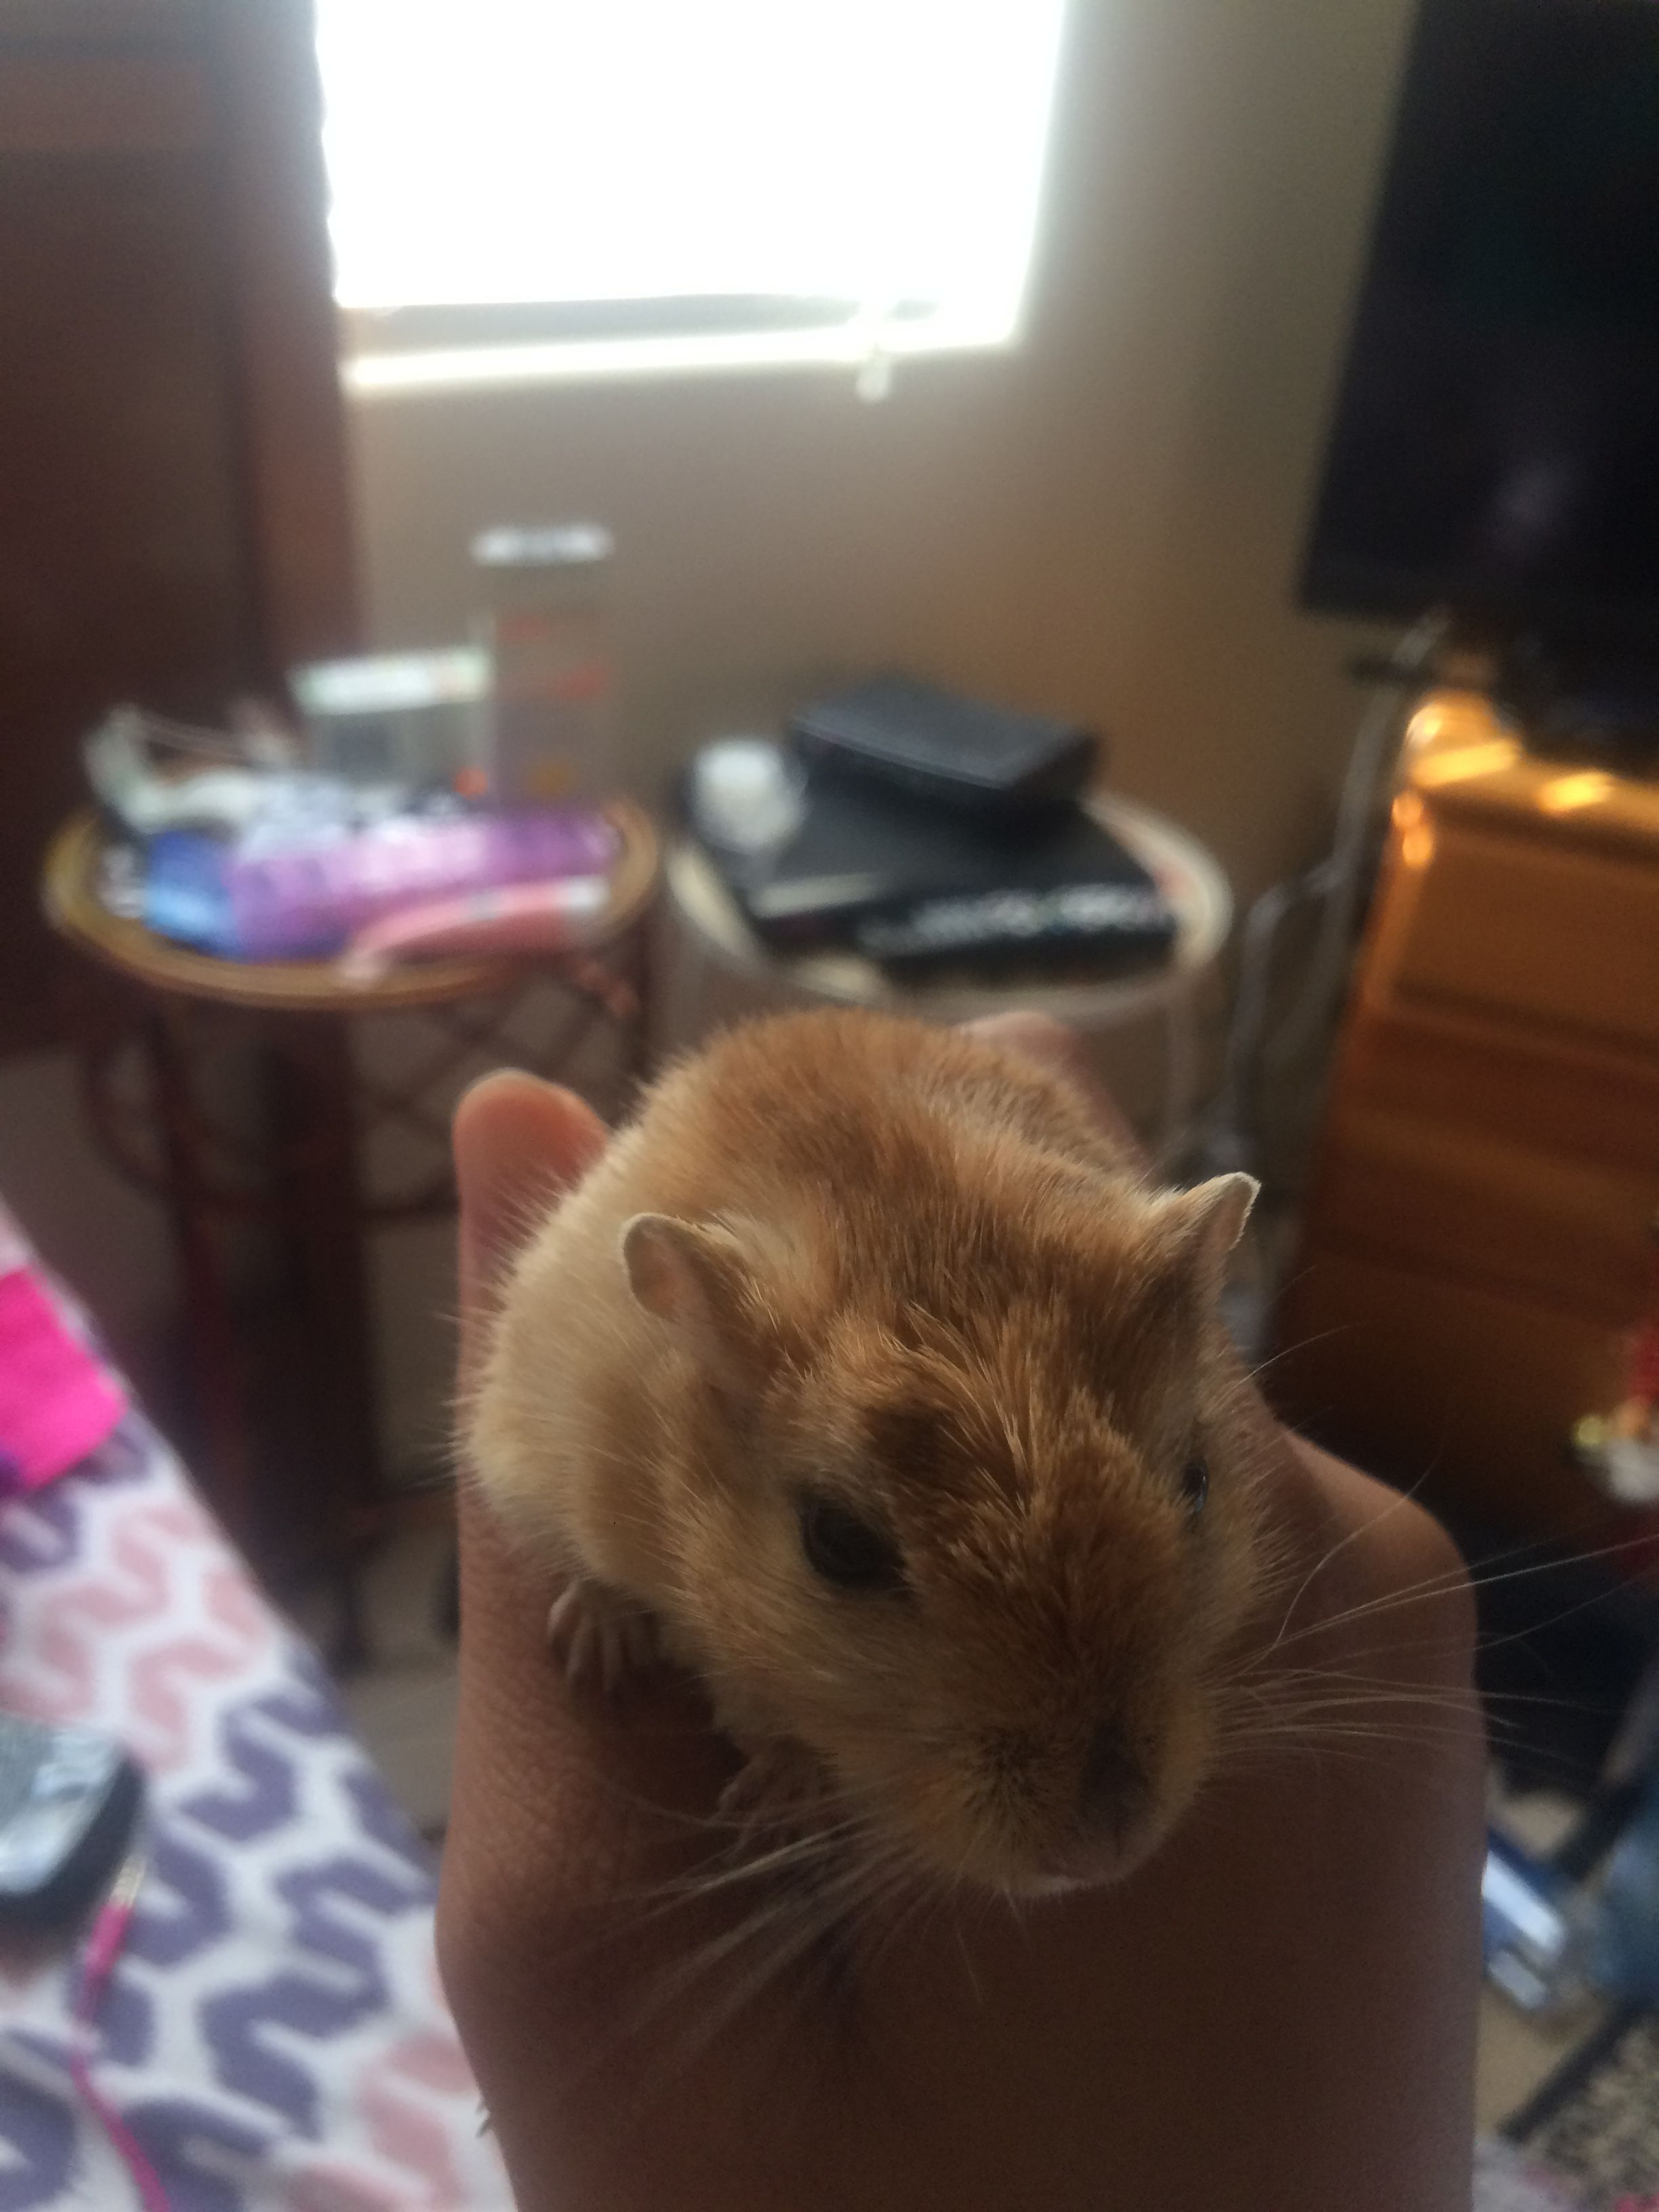 This is my gerbil his name is Judo.